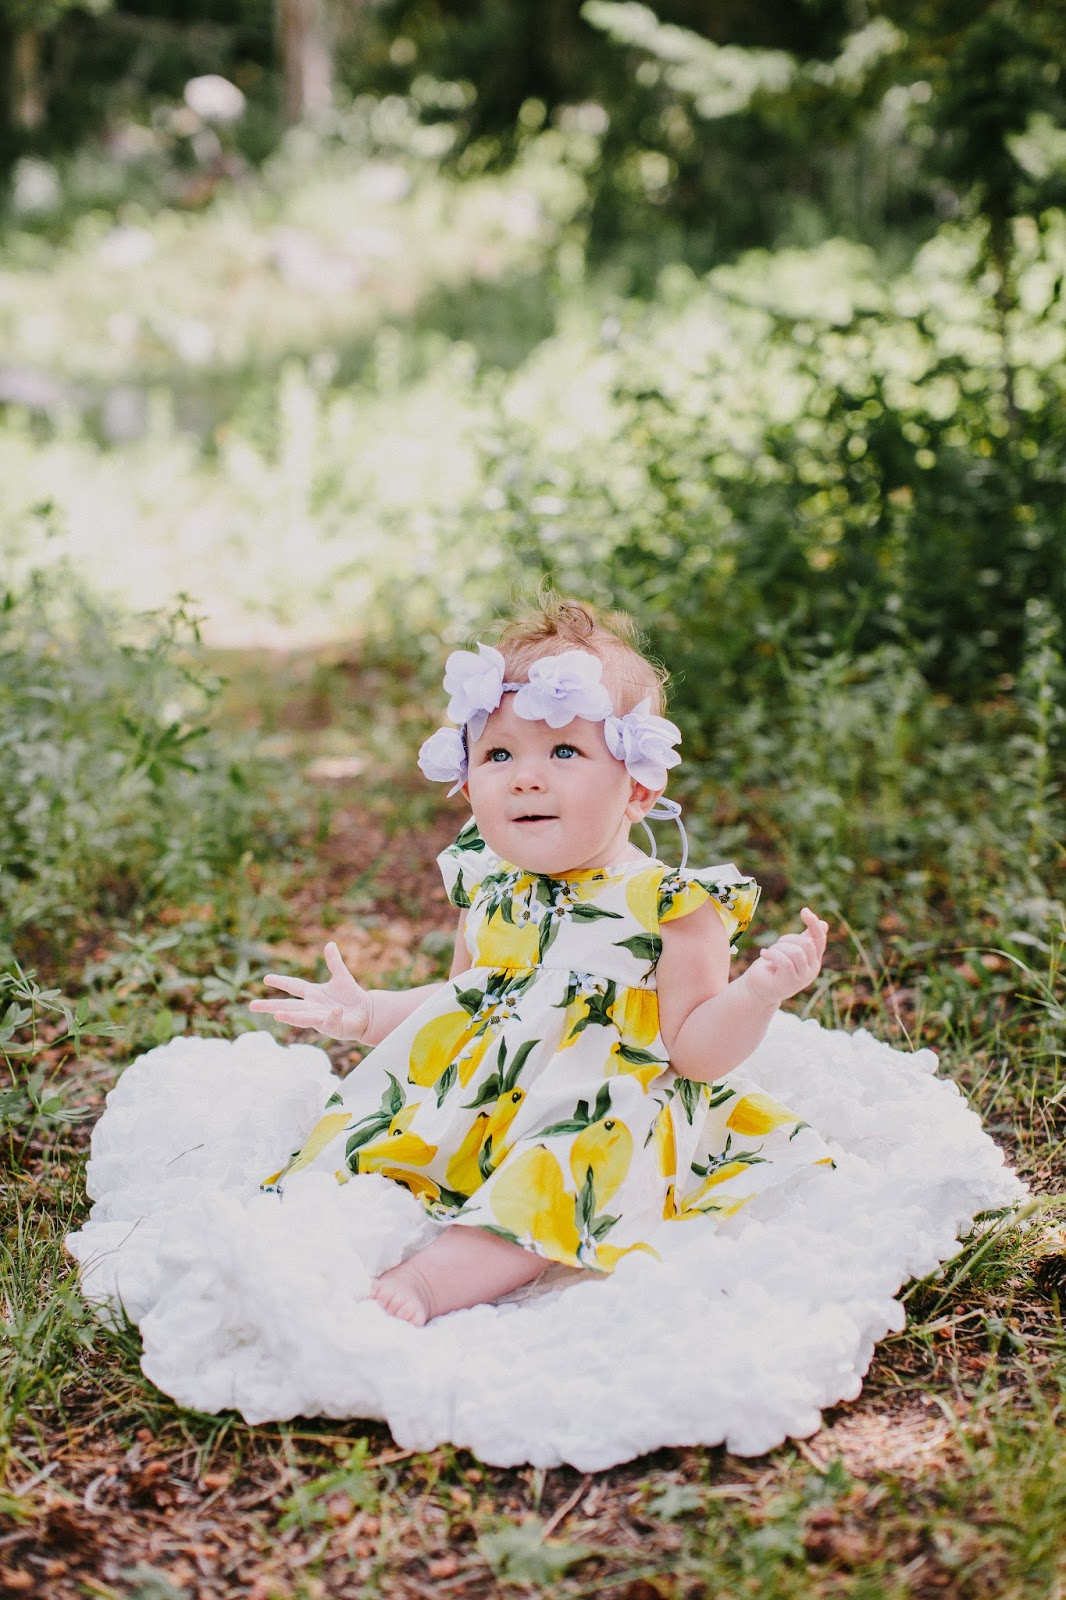 Cute Baby, Baby Dress, Baby Photoshoot